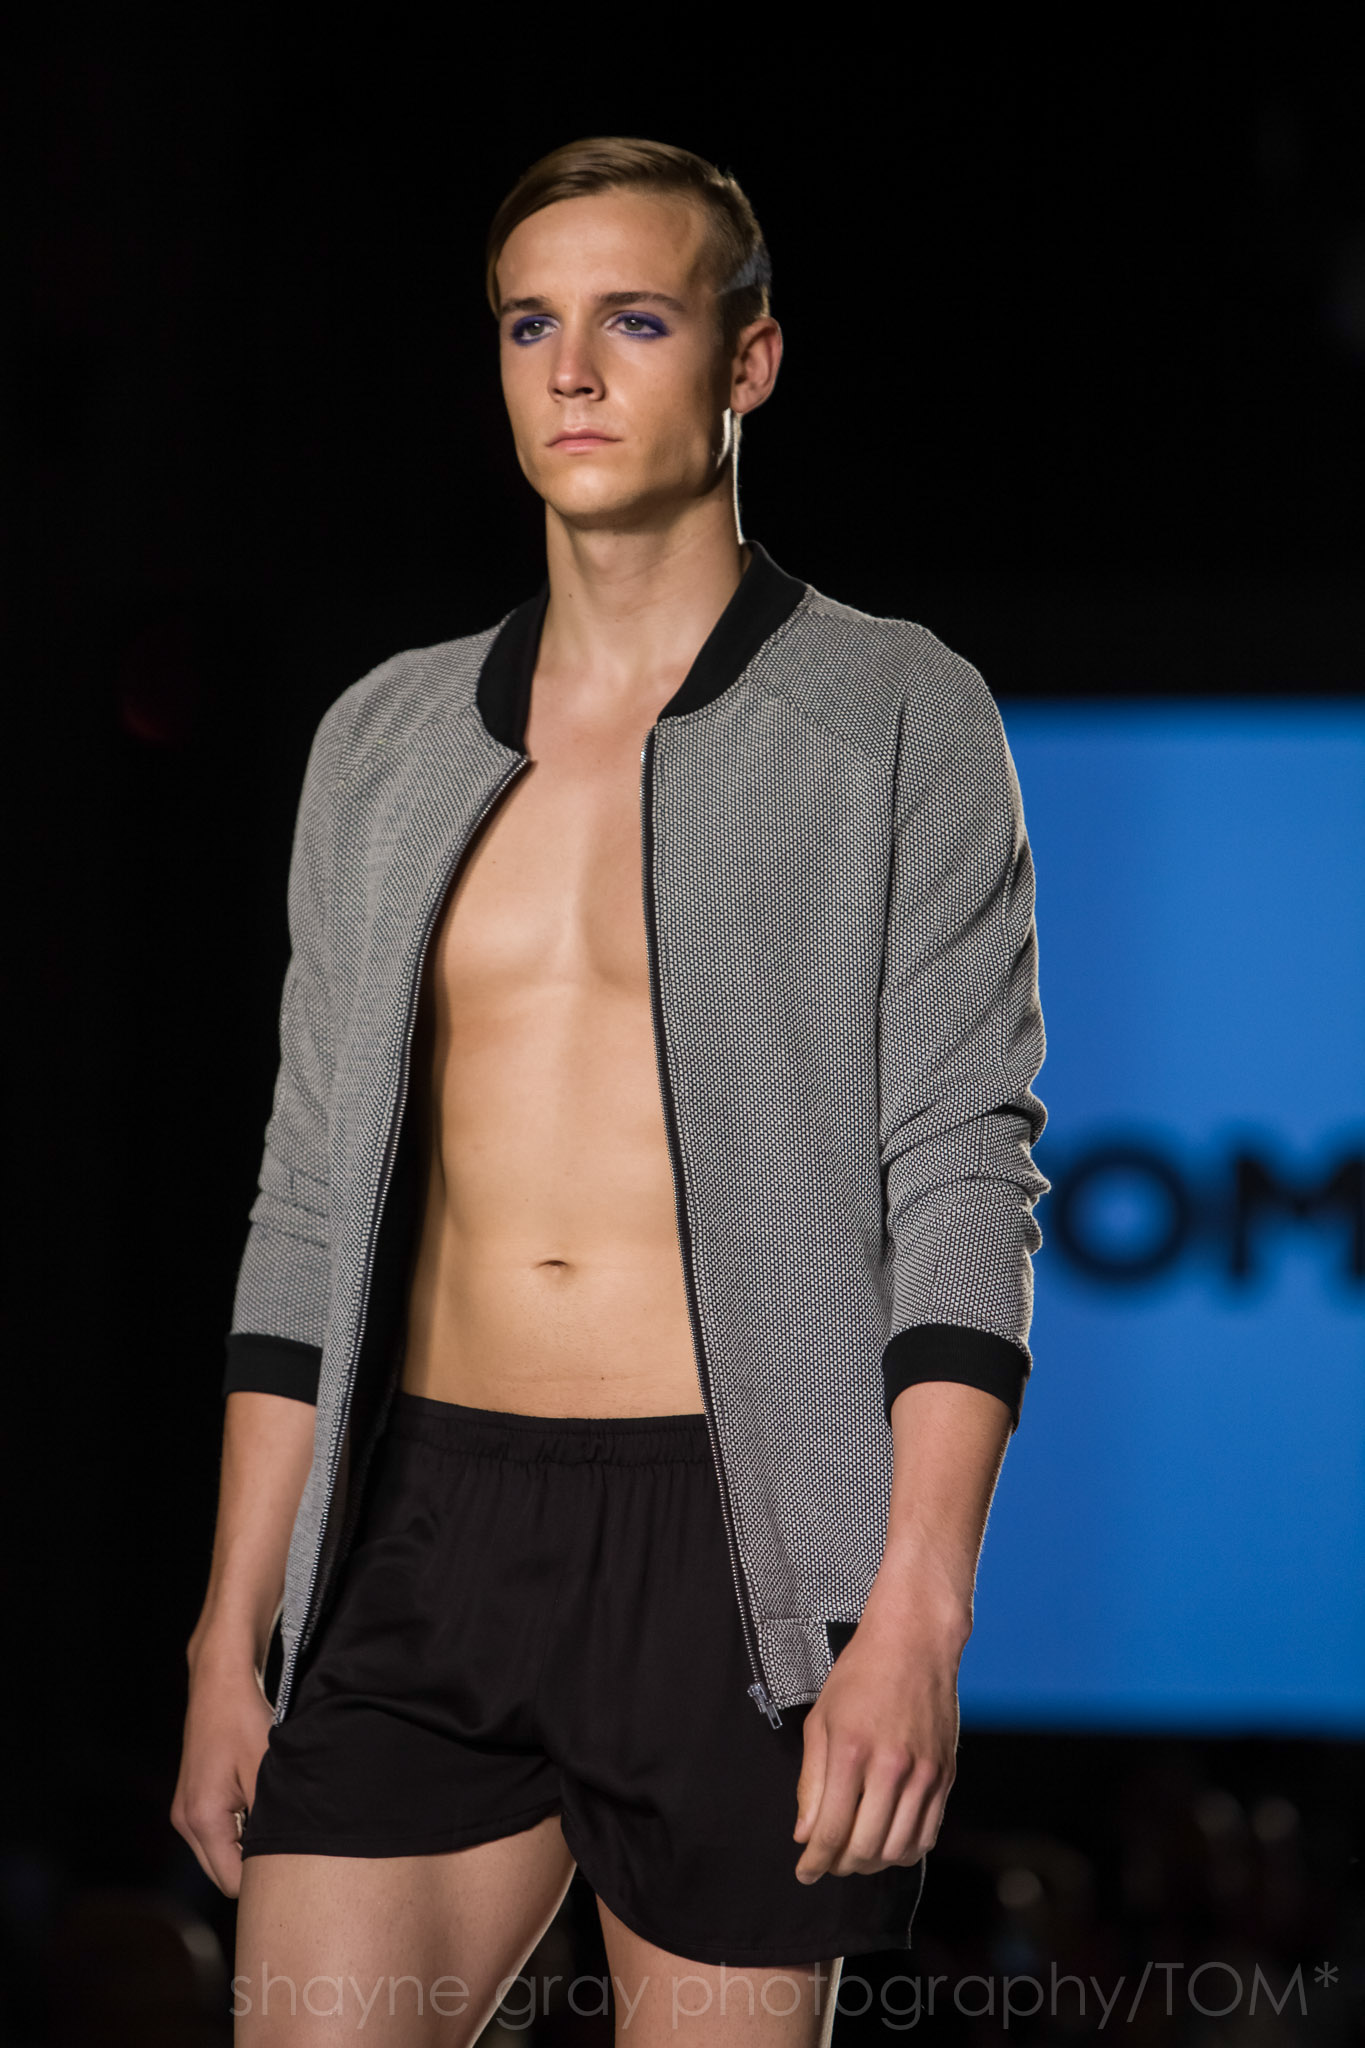 Shayne-Gray-Toronto-men's-fashion_week-TOM-diodati-6119.jpg